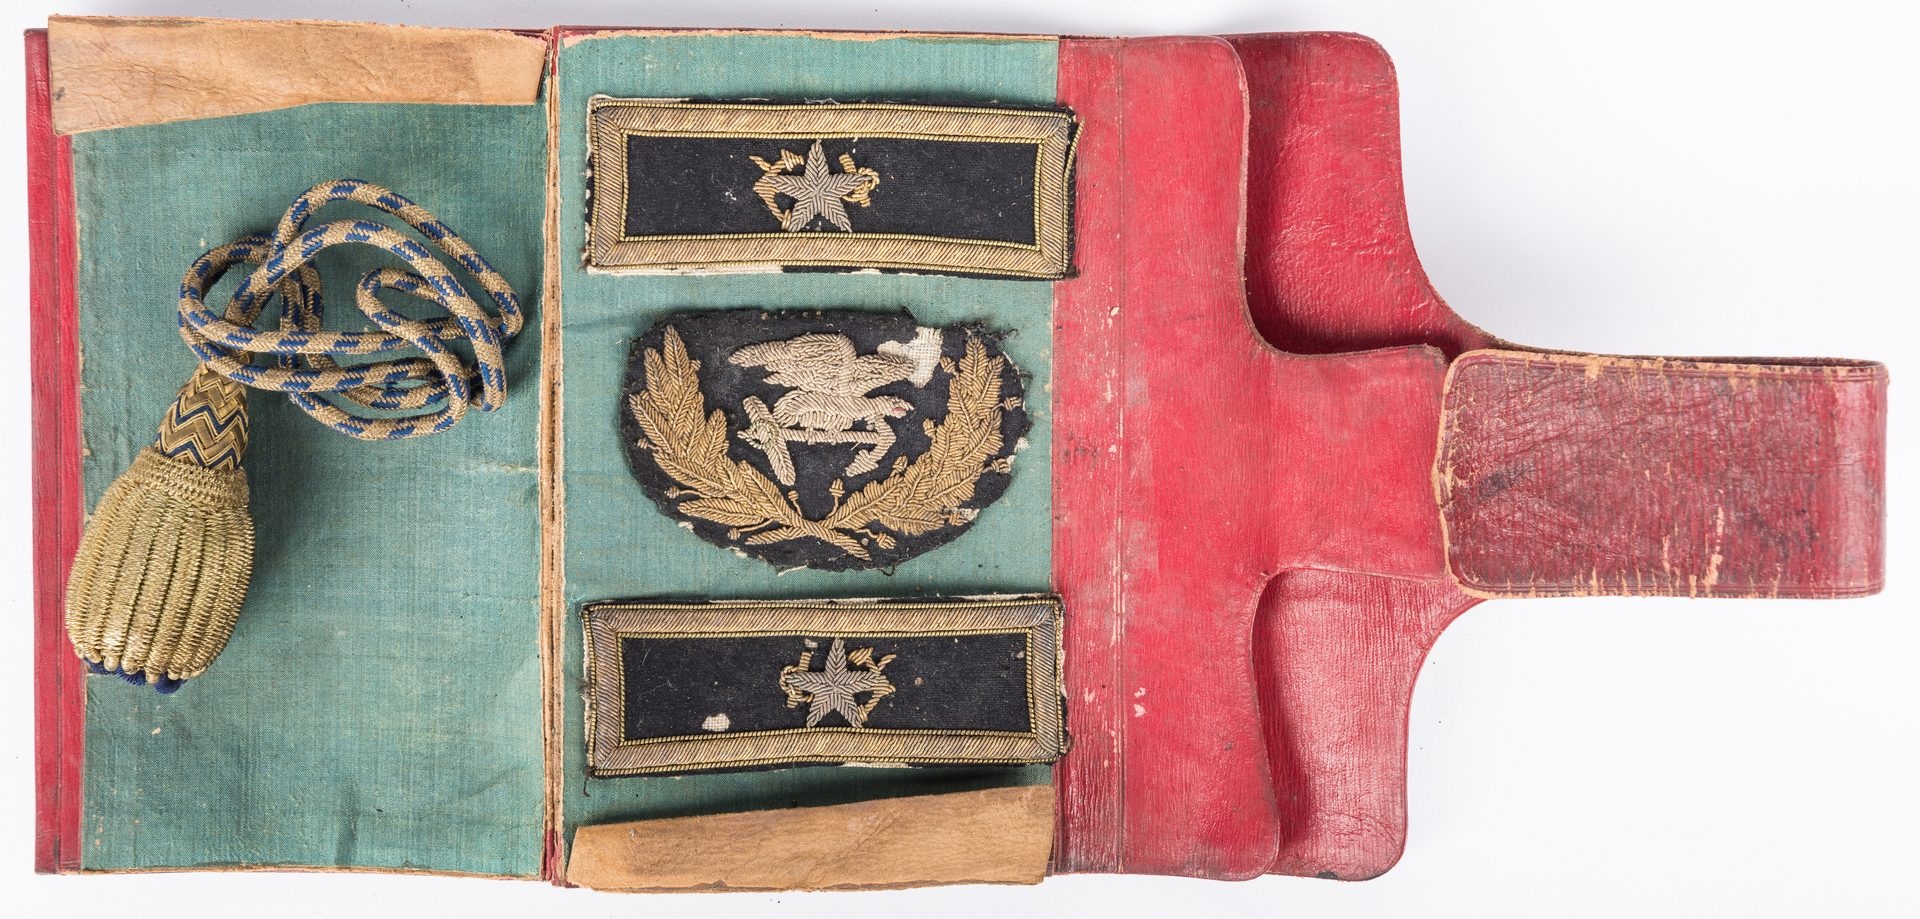 Lot 515: Hugh Young Purviance Naval Uniform Accessories & more, 6 items